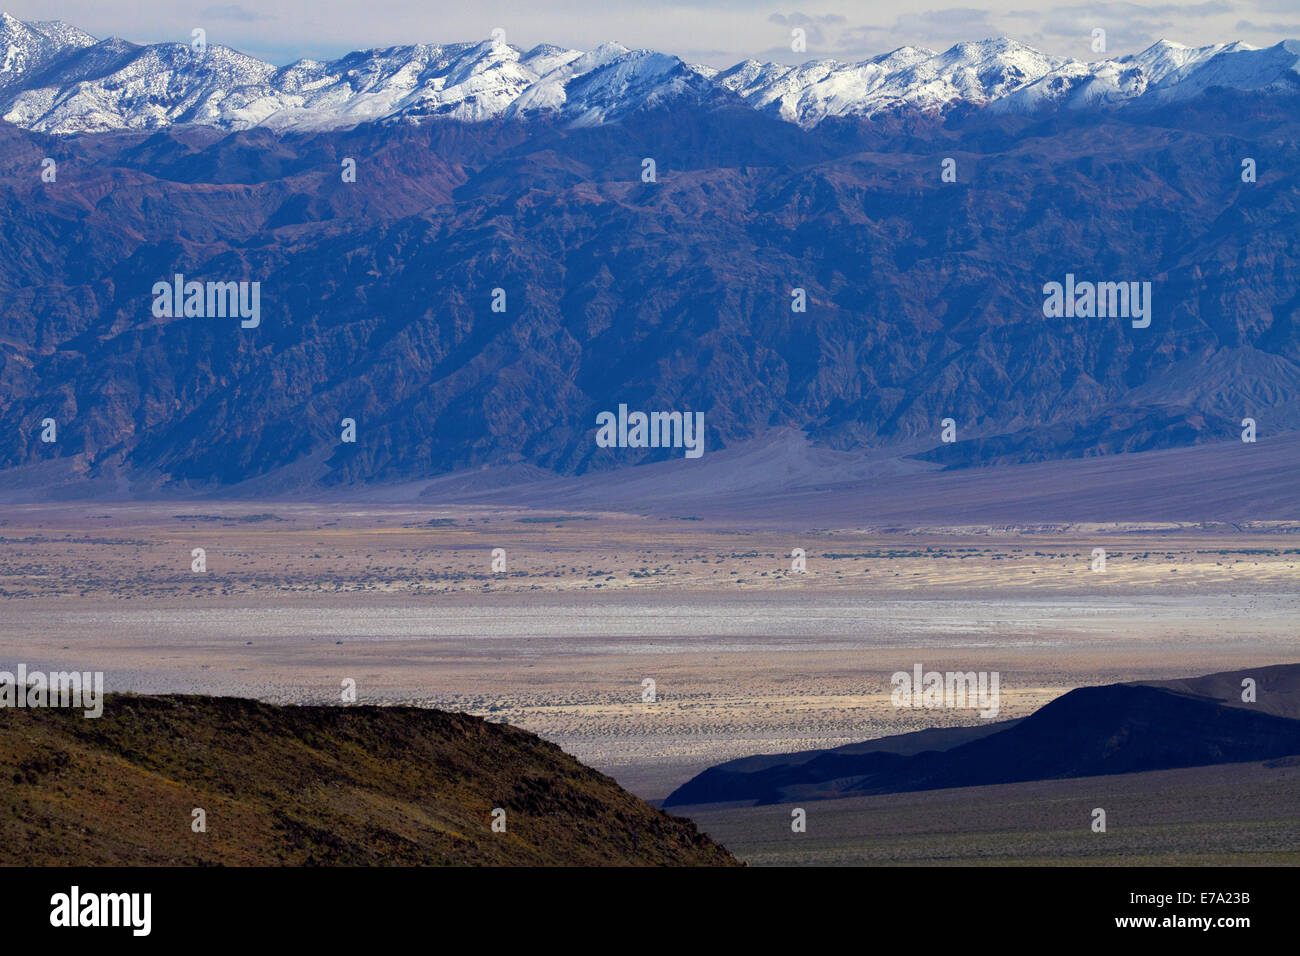 Death Valley near Stovepipe Wells, and snow on Grapevine Mountains, Death Valley National Park, Mojave Desert, California, USA Stock Photo